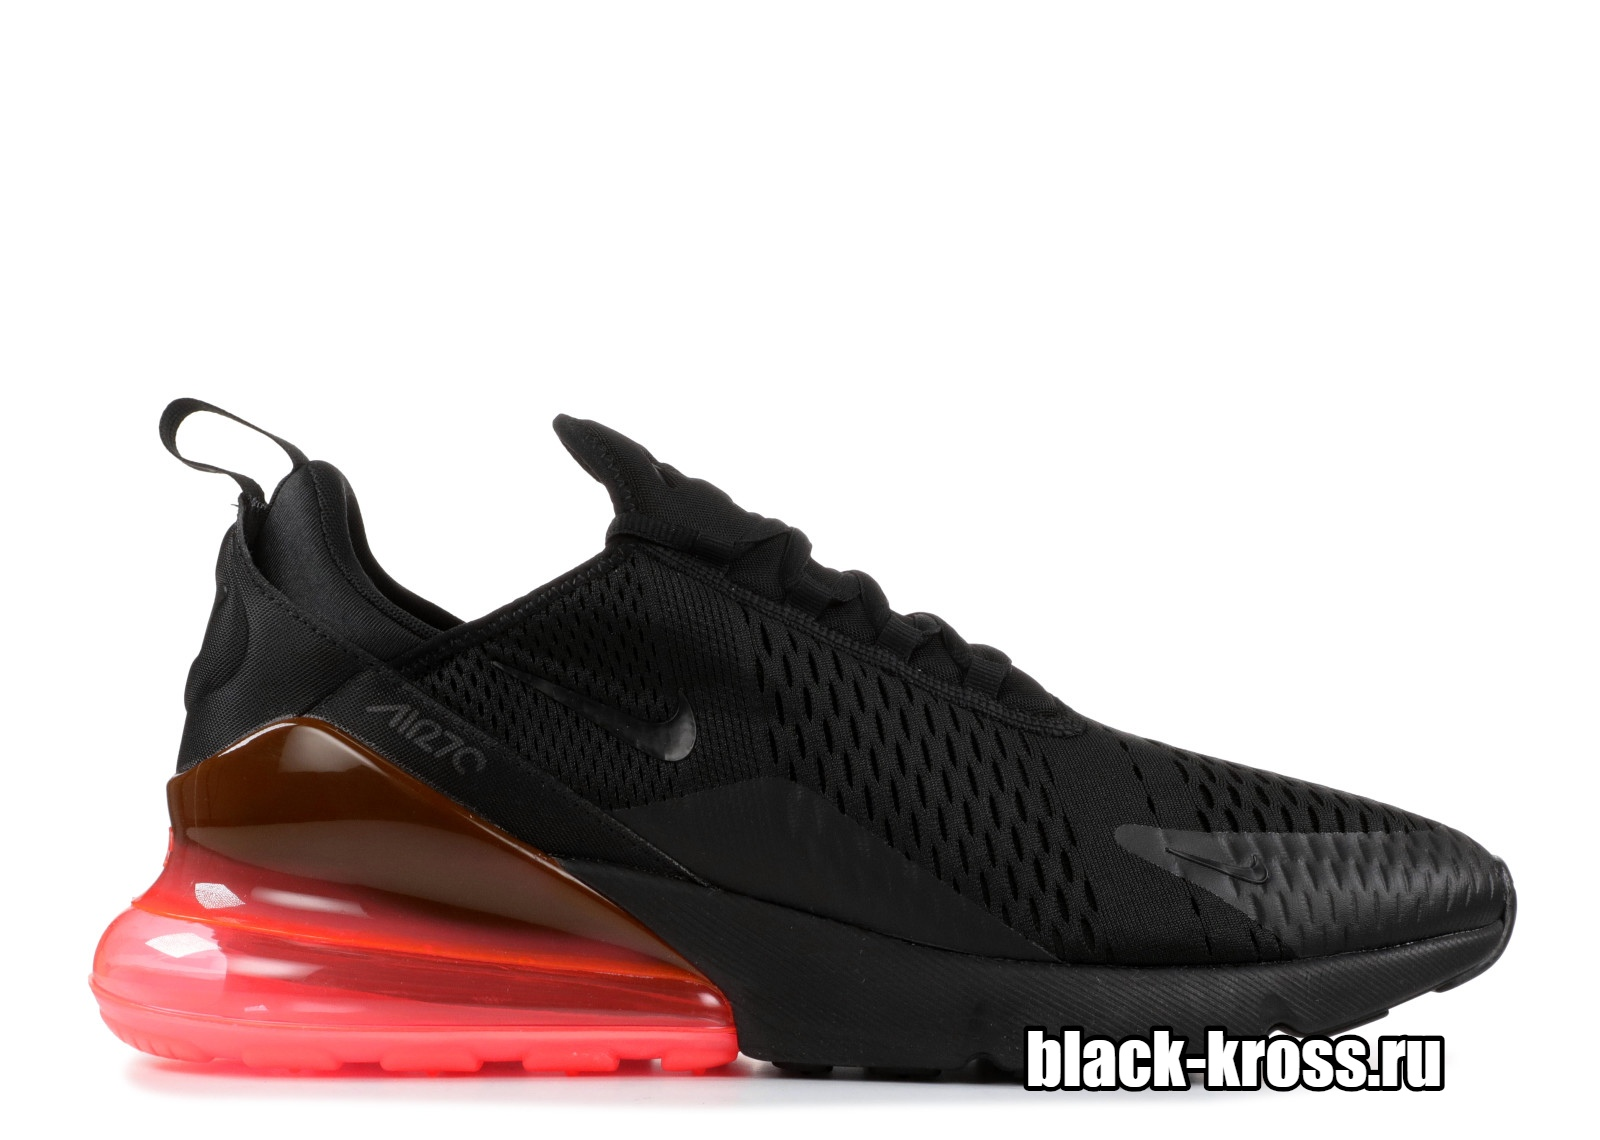 NIKE AIR MAX 270 Black & Red (36-45)